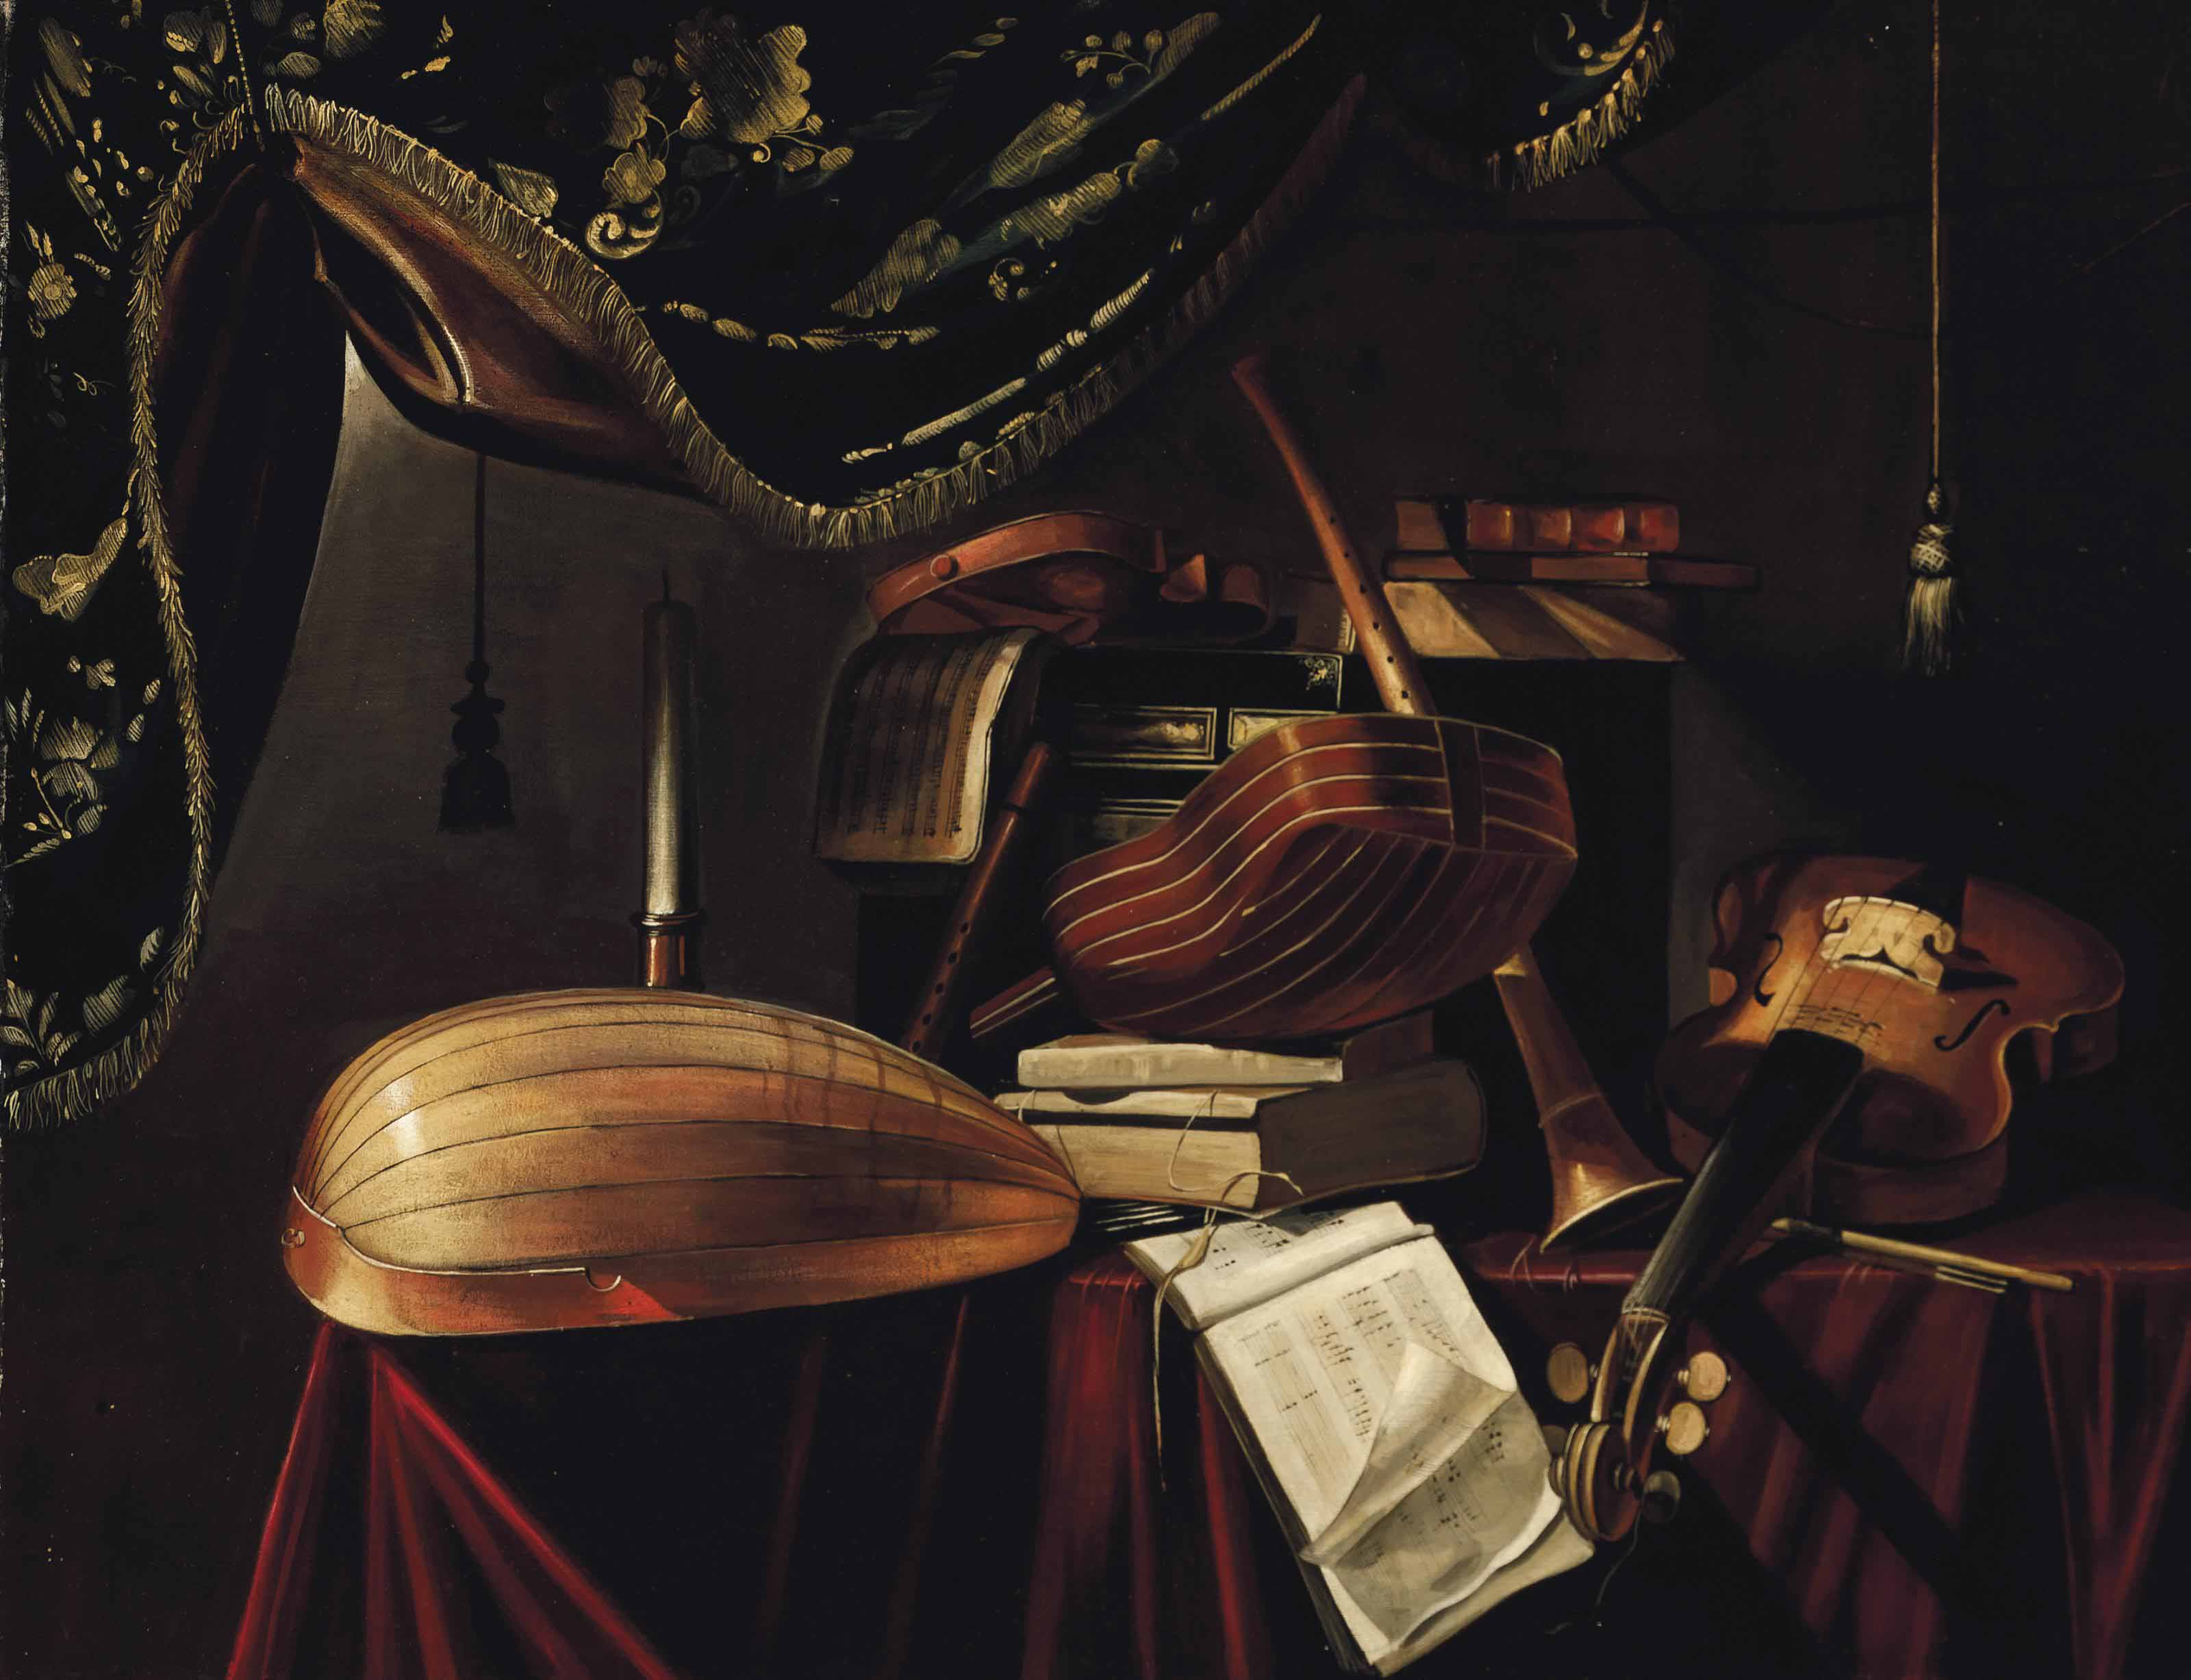 A mandolino, a lute, a violin, a guitar, a clarinet and musical manuscripts on a draped table in an interior